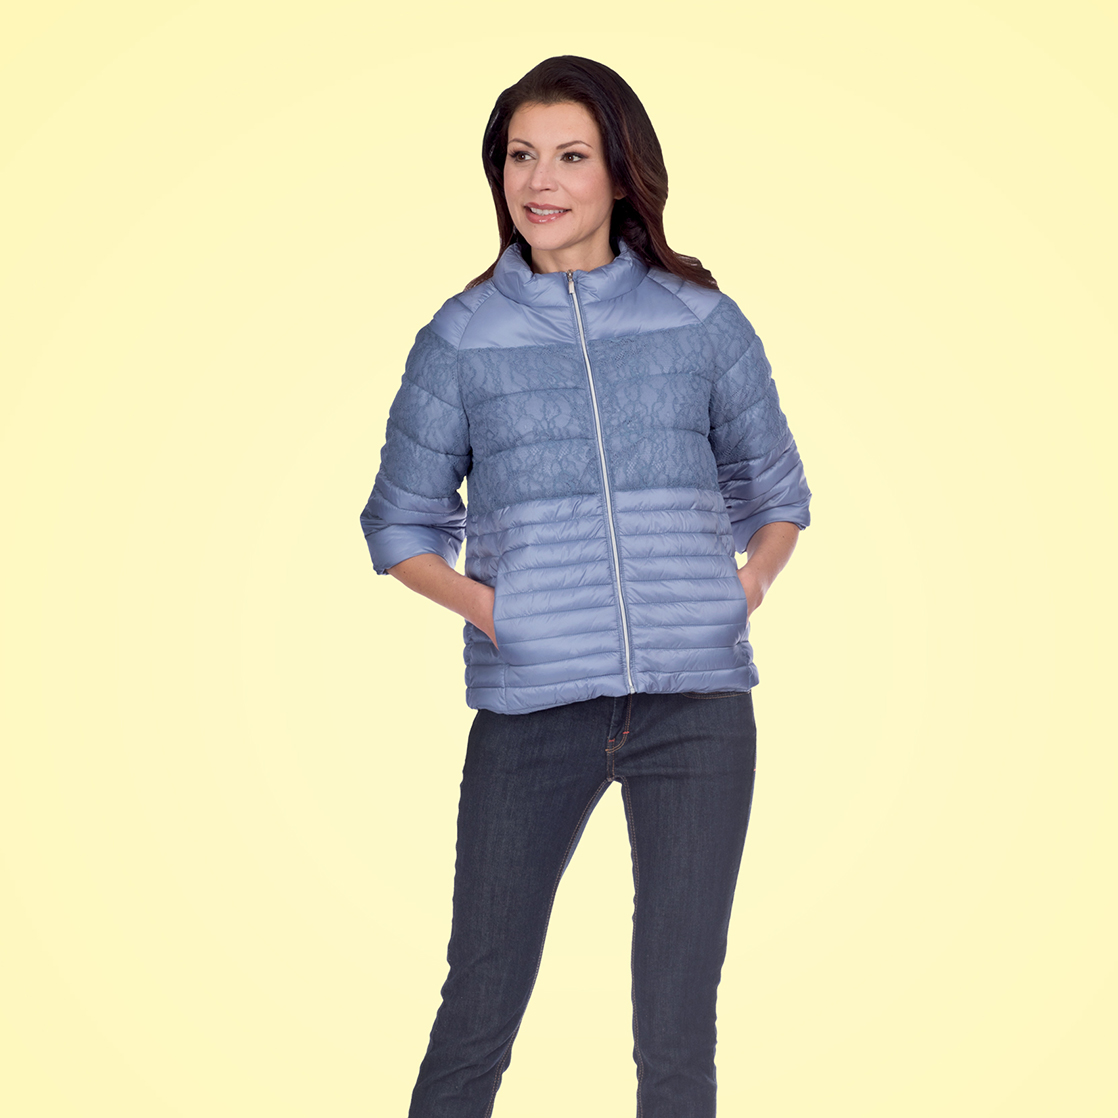 Lightweight padded jacket with lace